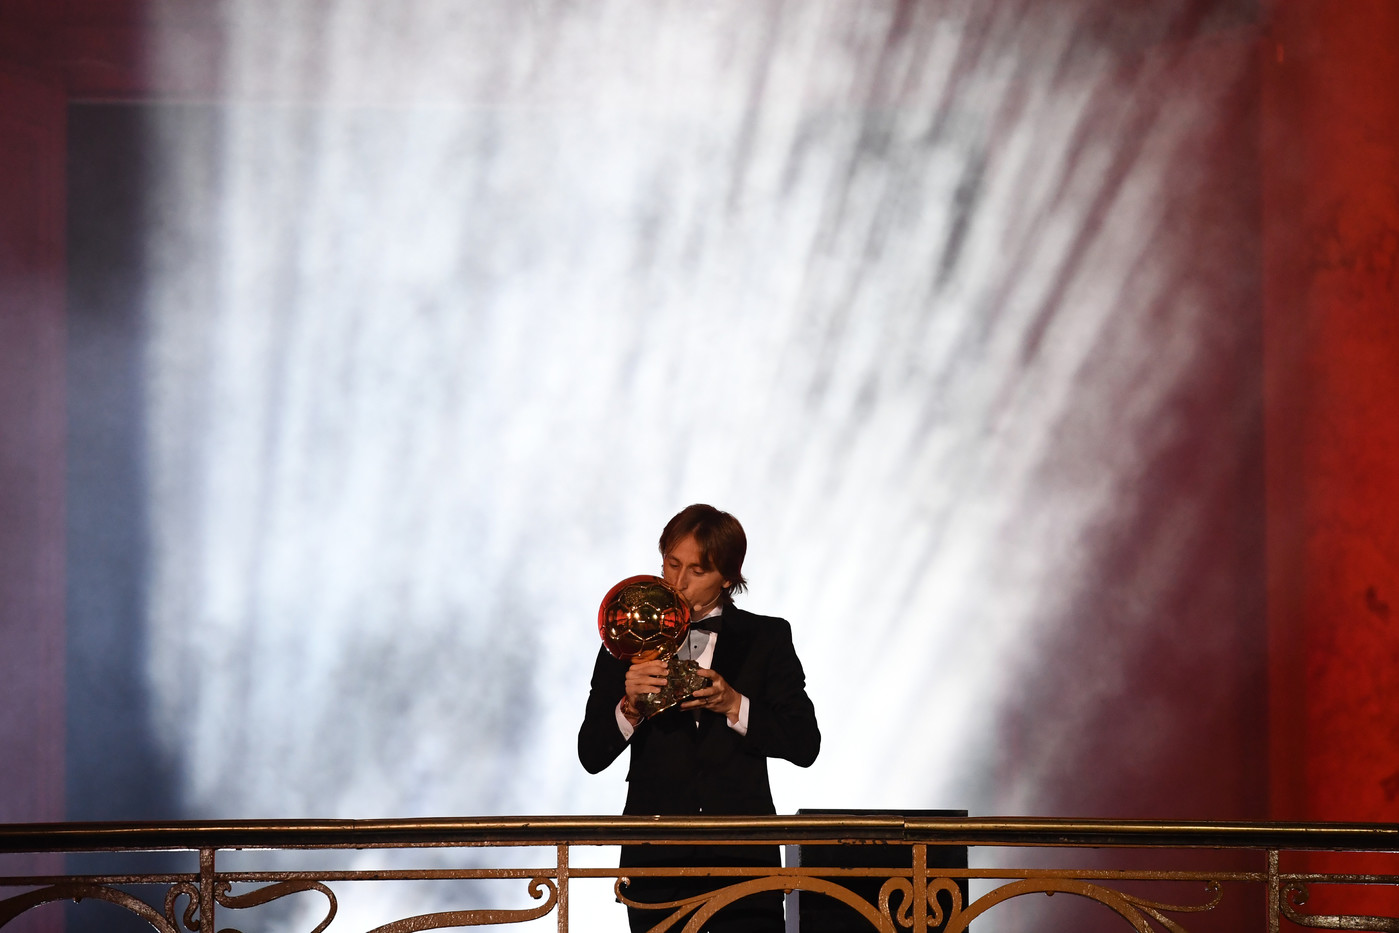 Luka Modric lifts 2018 Ballon d'Or against Messi or Ronaldo